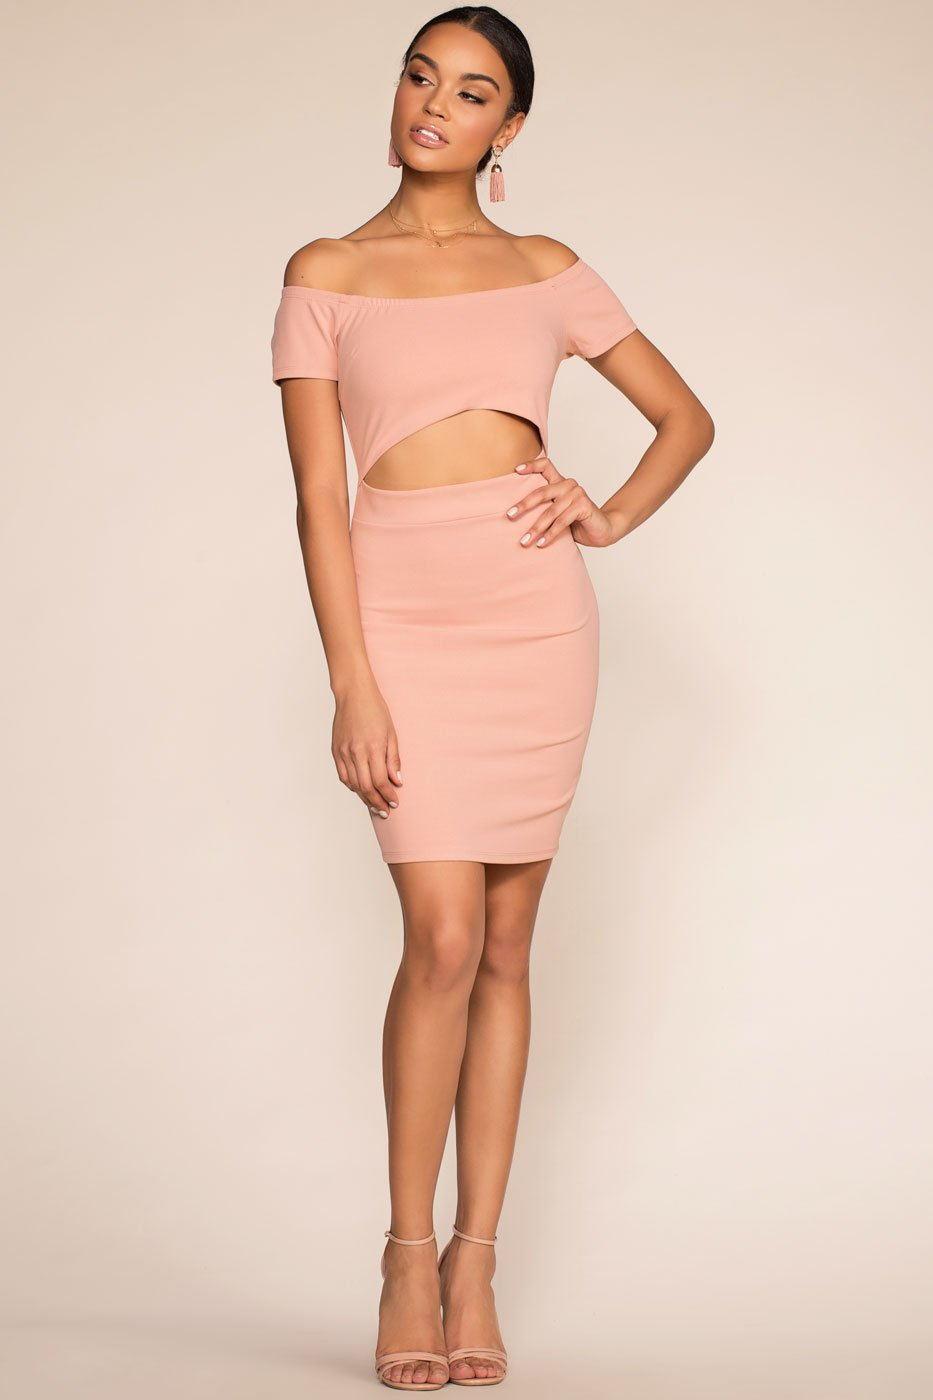 Dresses - Just Whistle Bodycon Dress - Pink